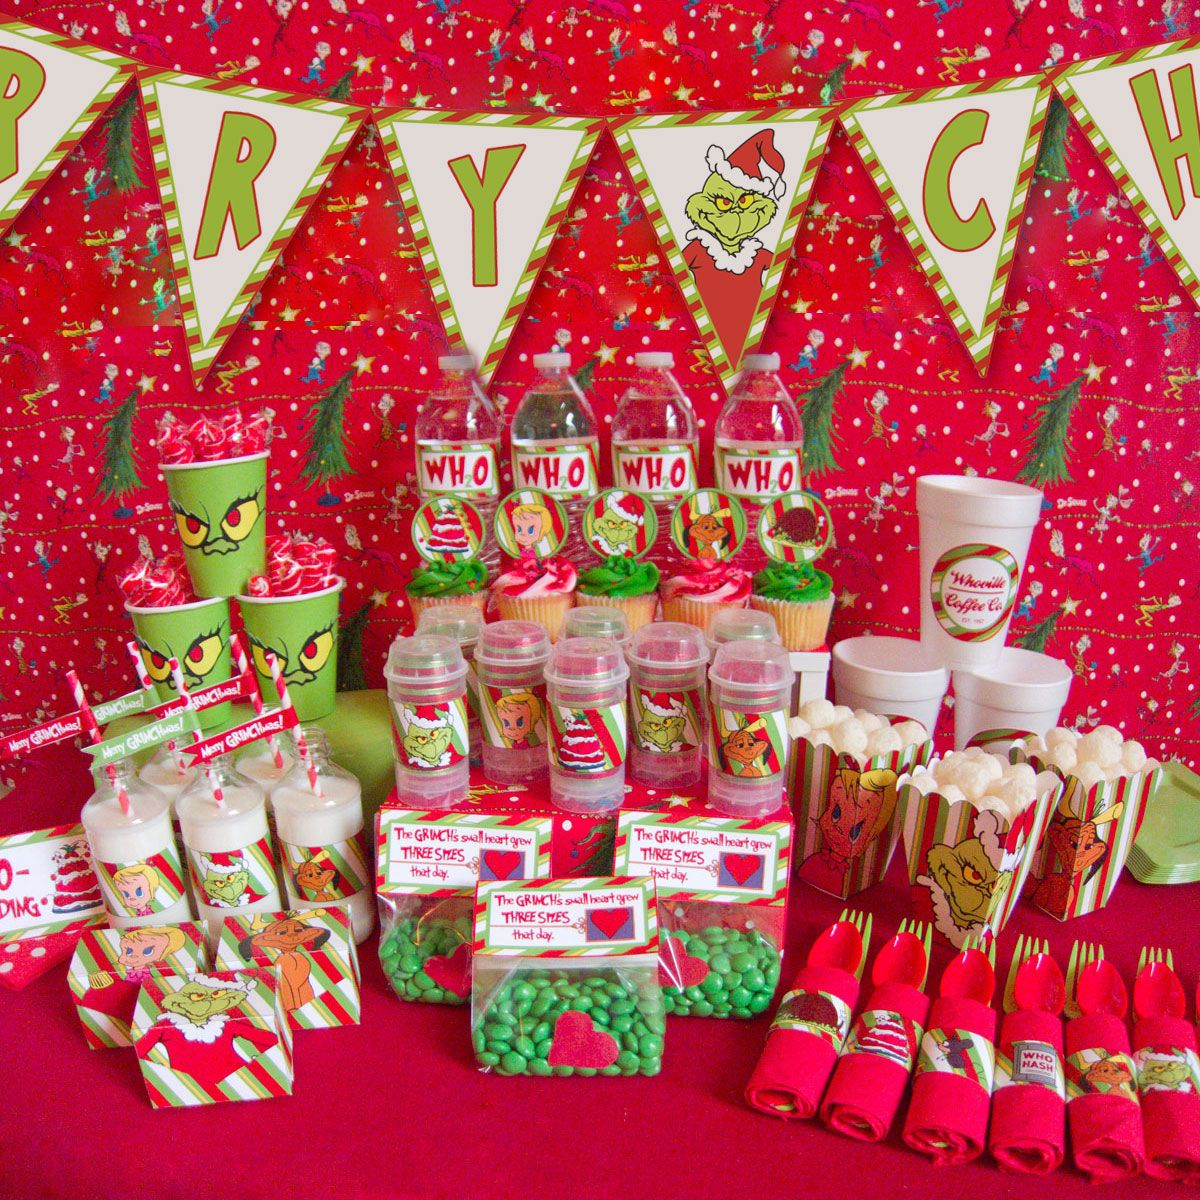 Grinch Christmas party | Grinch party | Pinterest